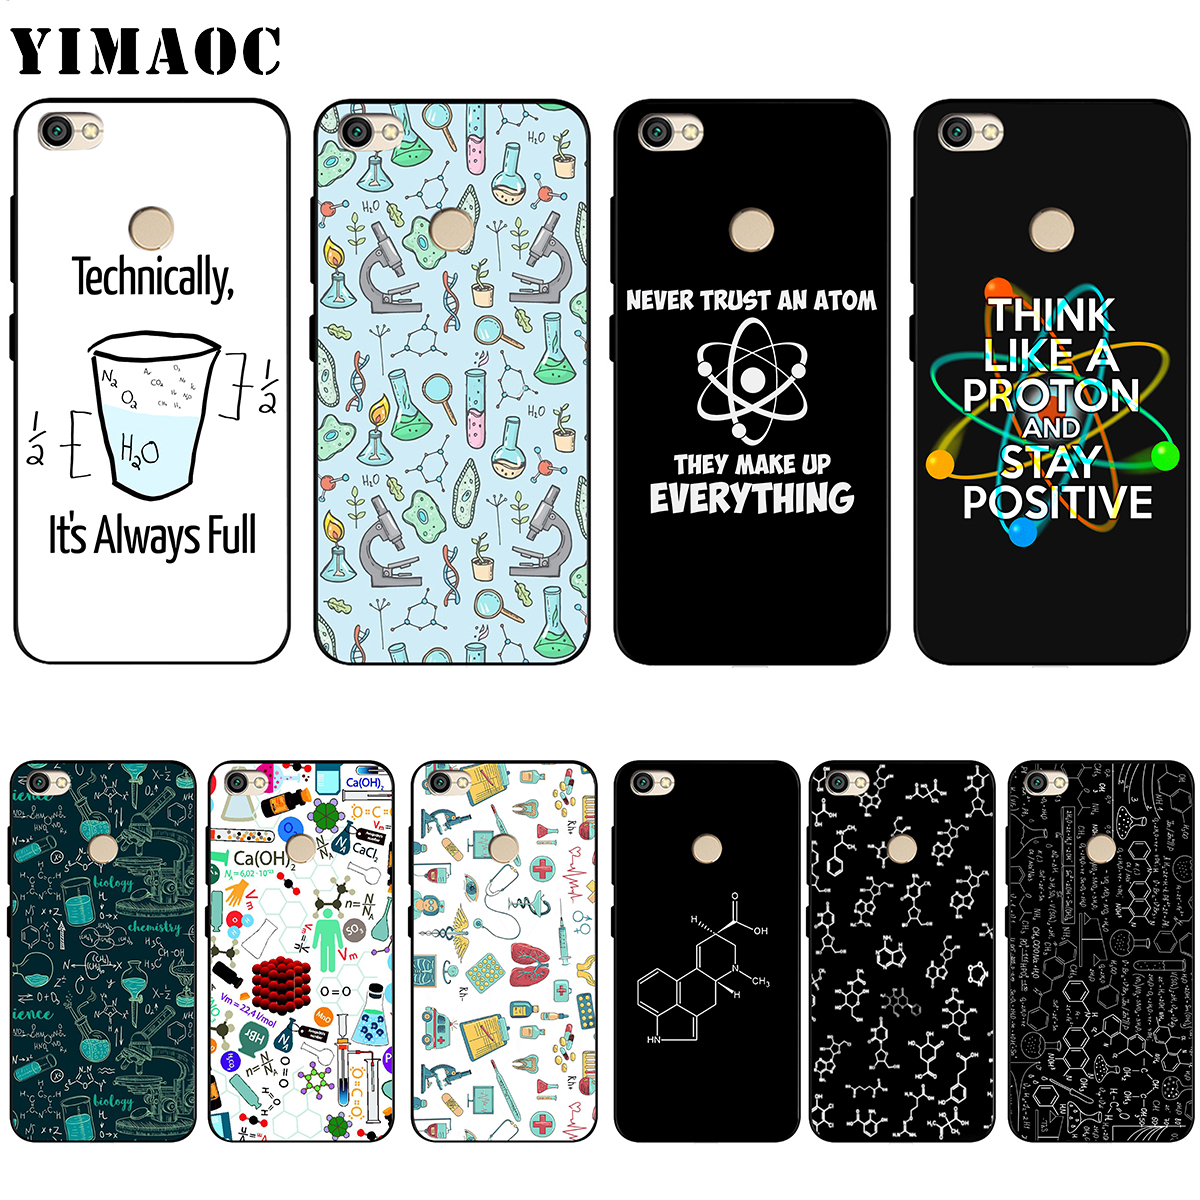 YIMAOC Silicone-Case Chemistry Xiaomi Redmi Note-4 Prime-Plus for Note-4/4x4a/5/.. And